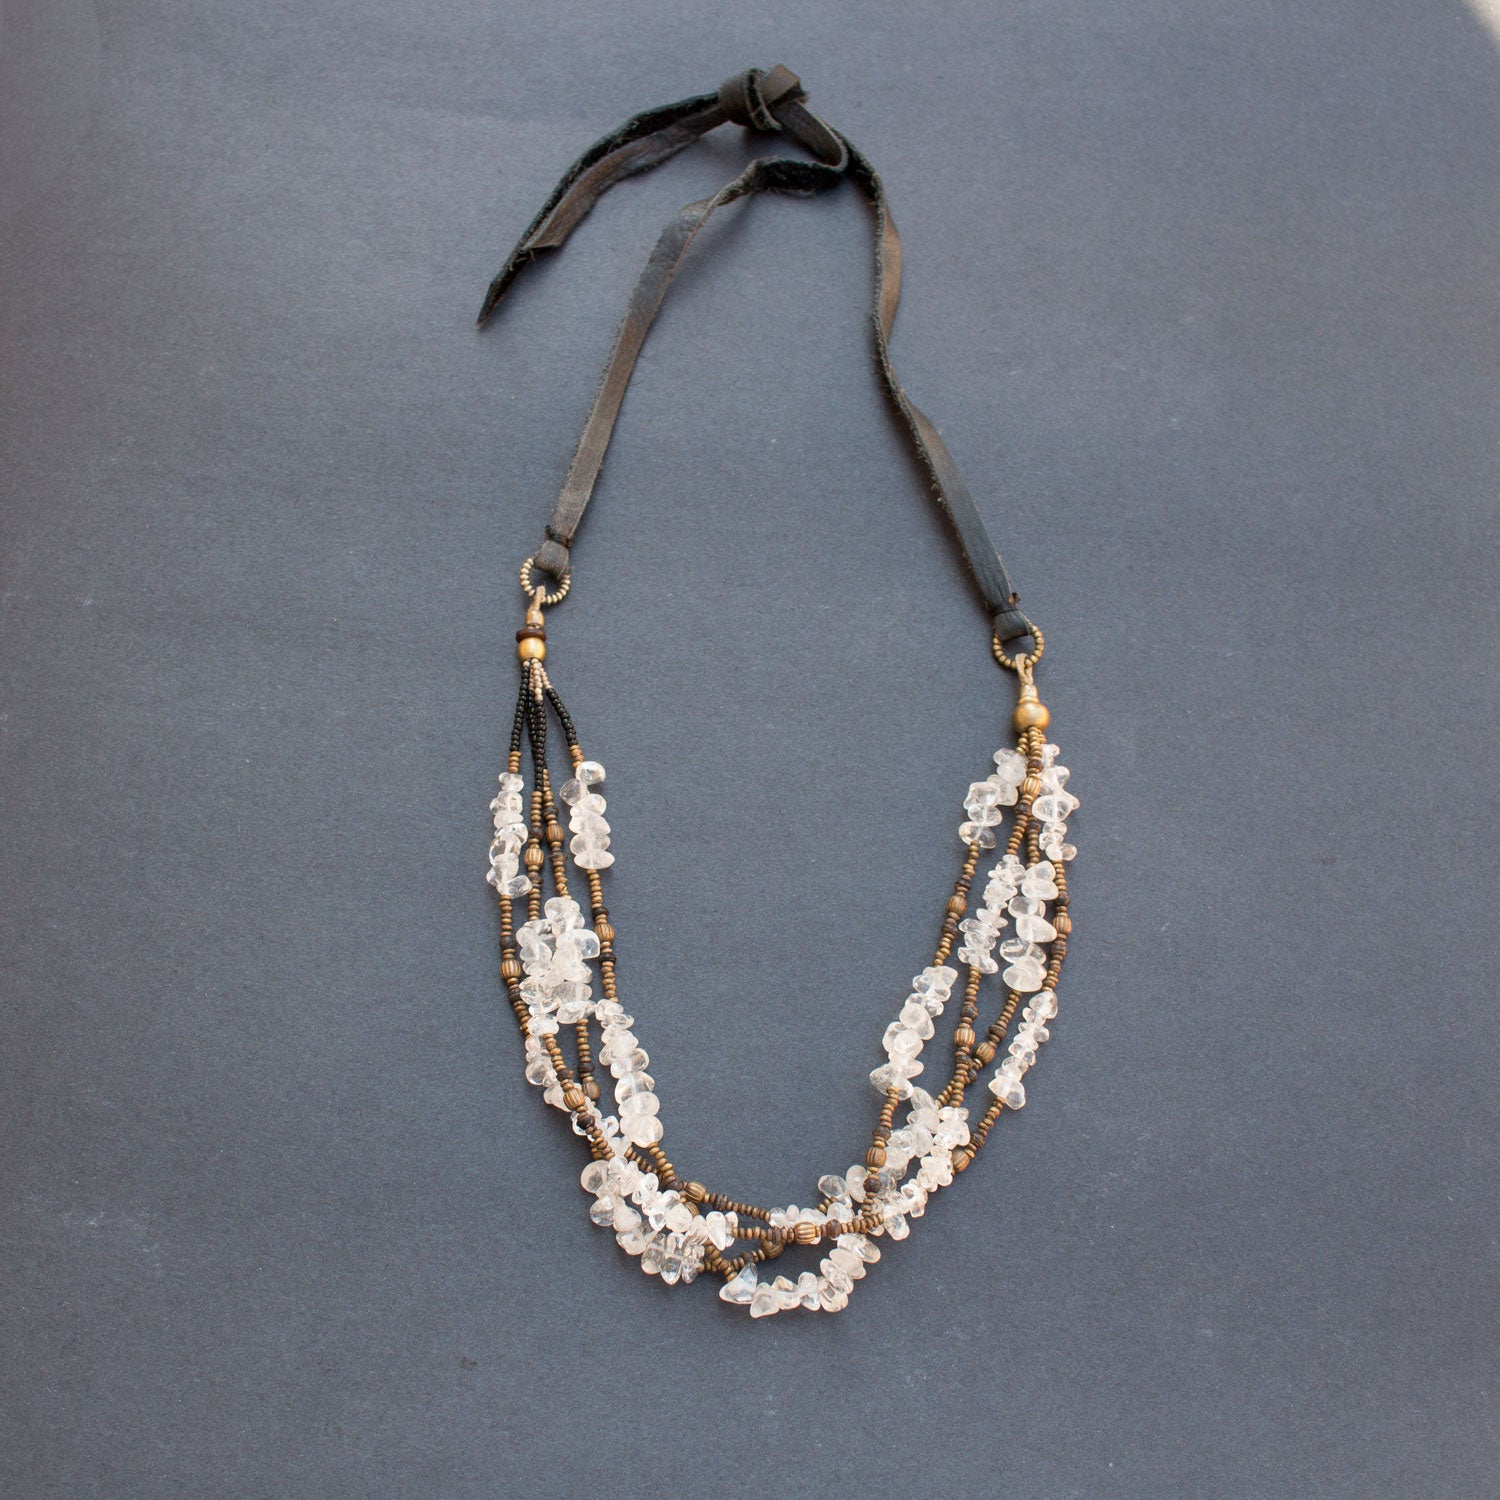 Quartz leather necklace